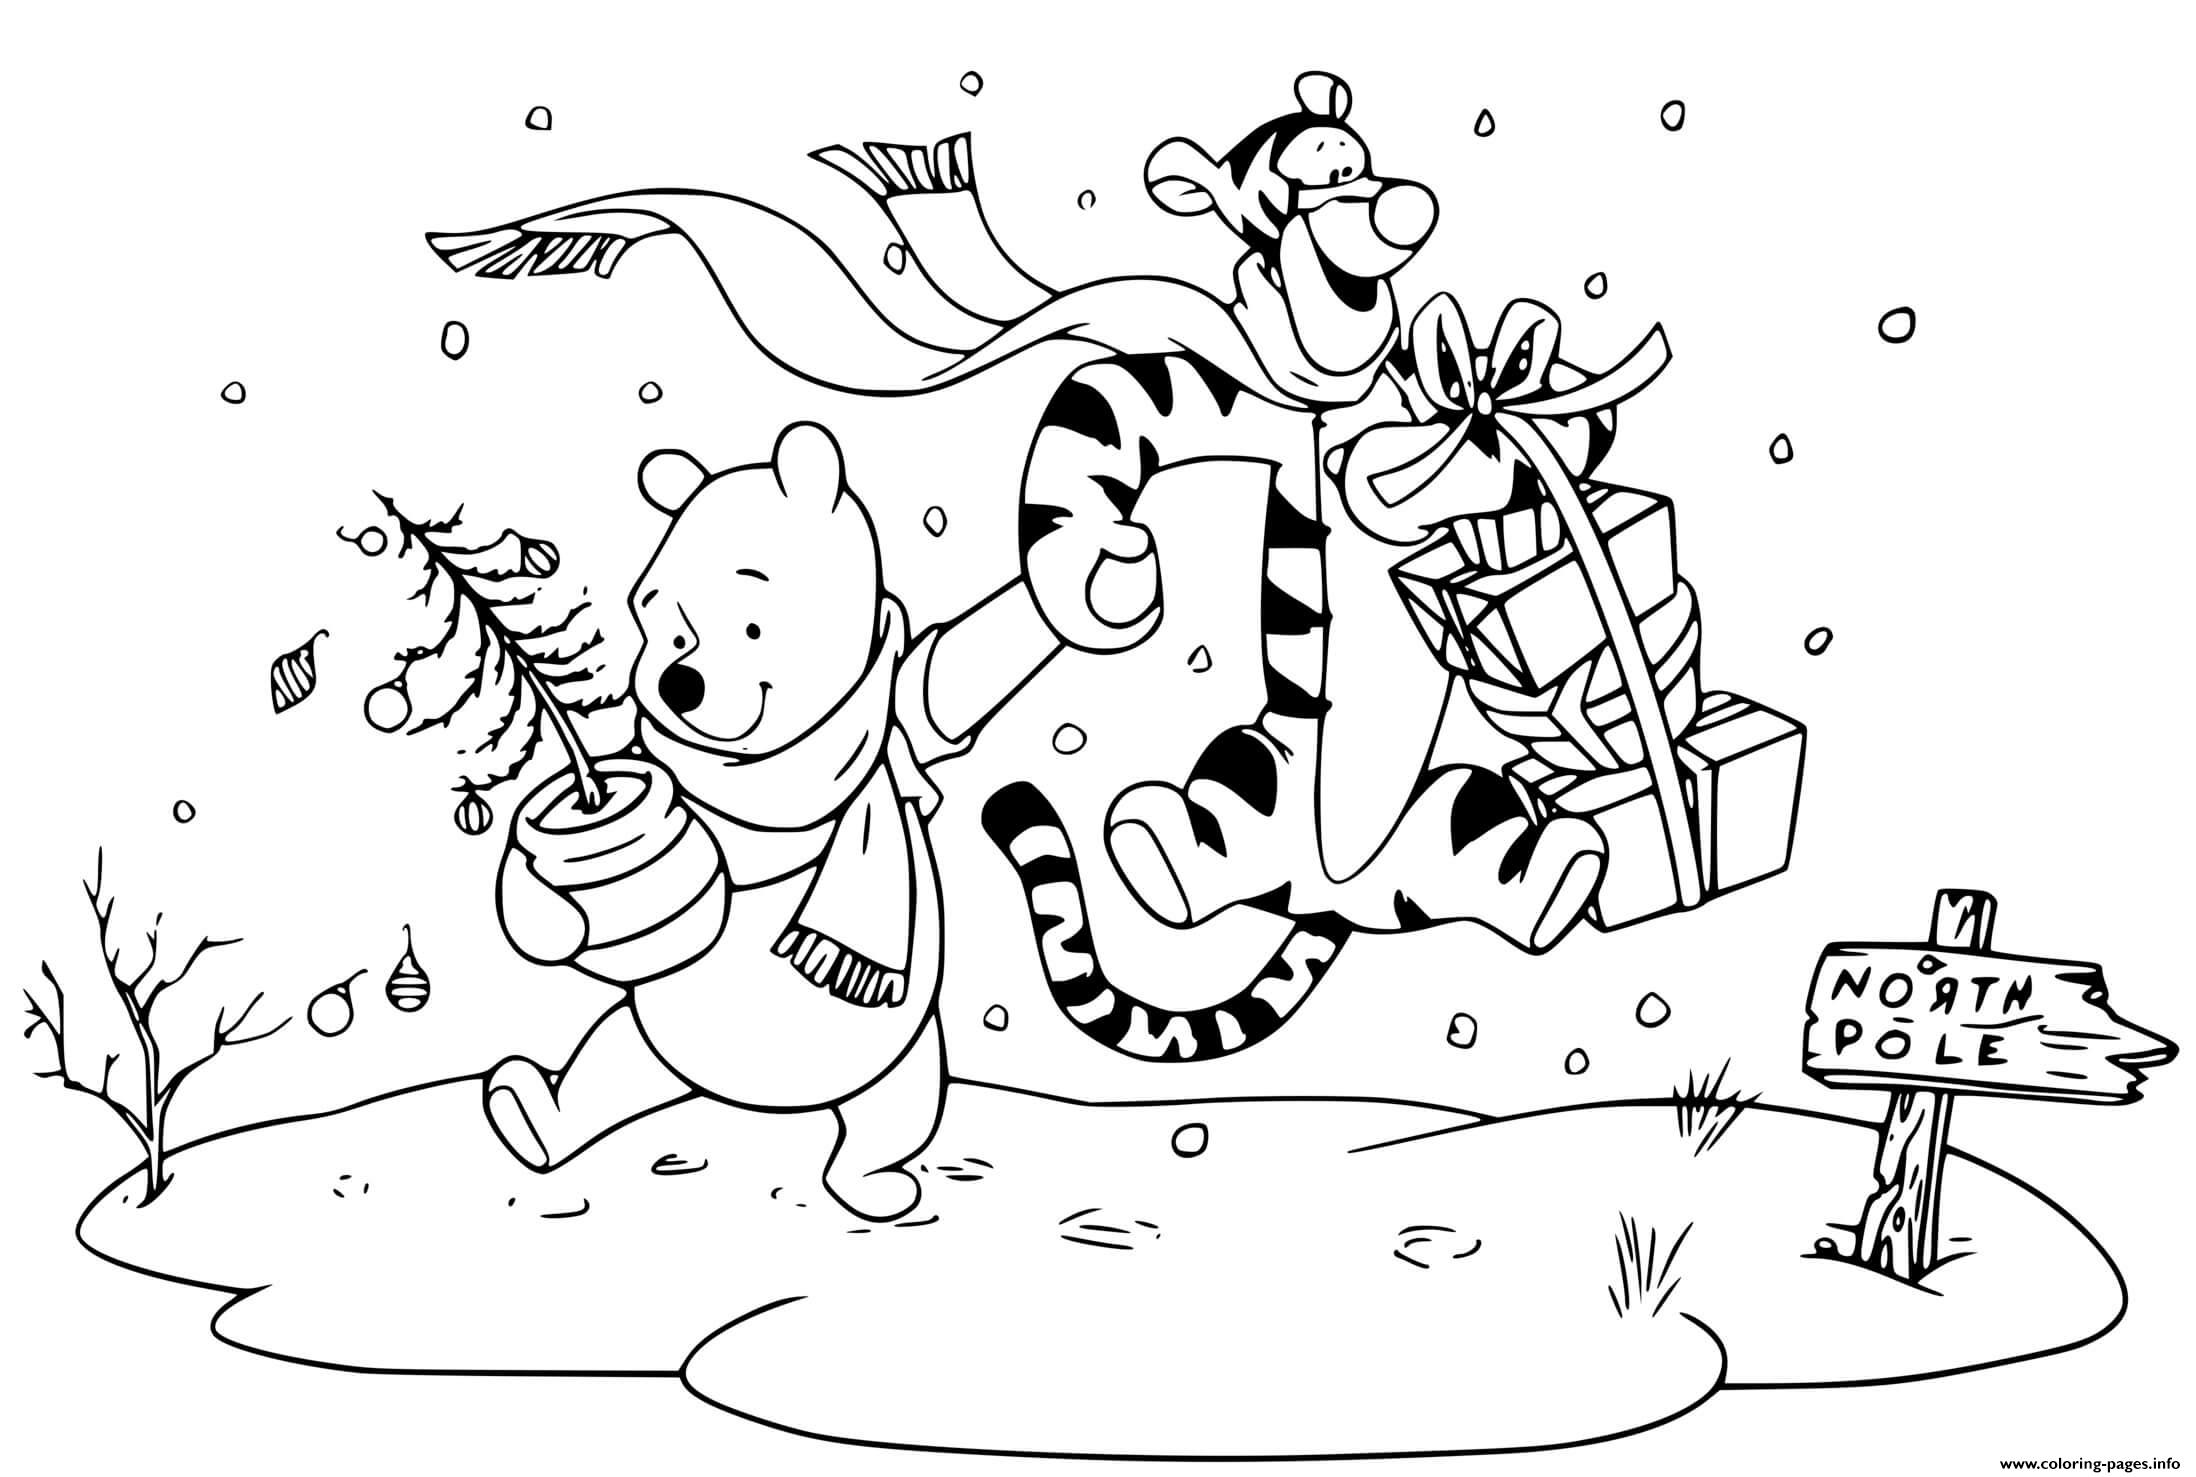 Pooh Tigger Off To The North Pole Coloring Pages Printable